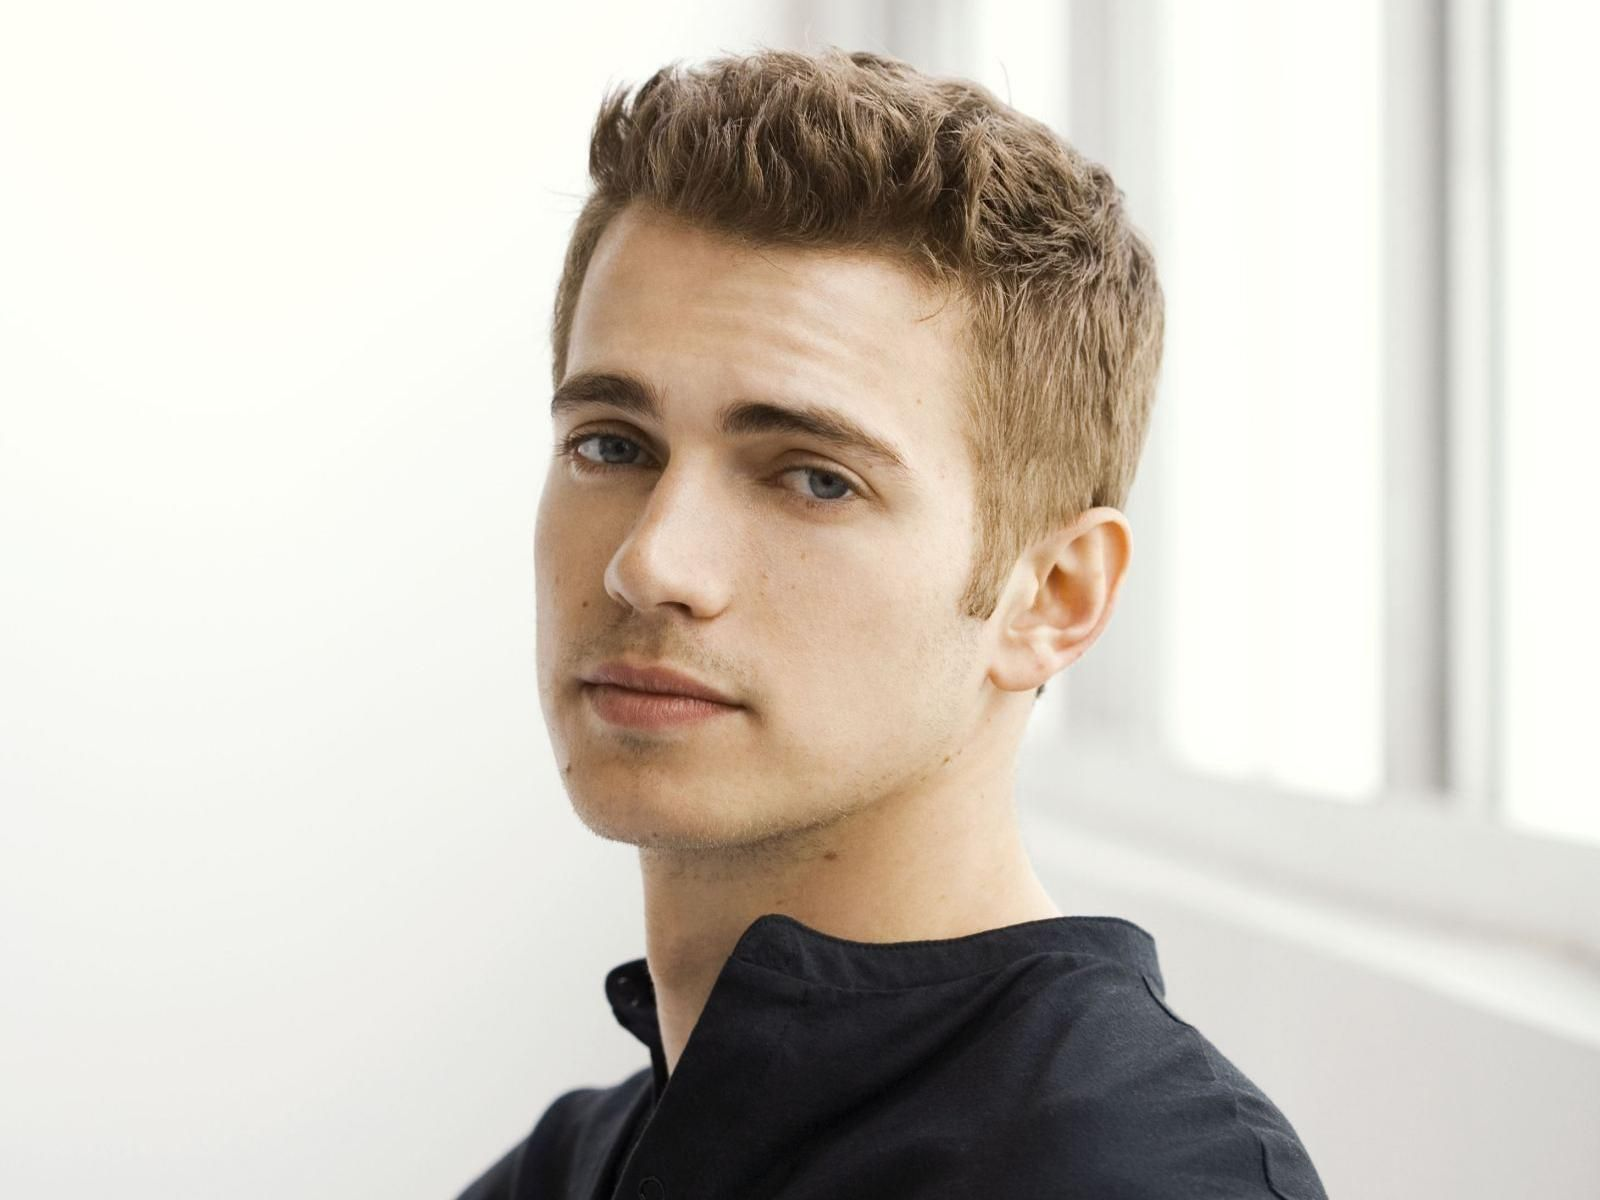 Hayden christensen medium wavy casual hairstyle thehairstyler com - Hayden Christensen Google Search